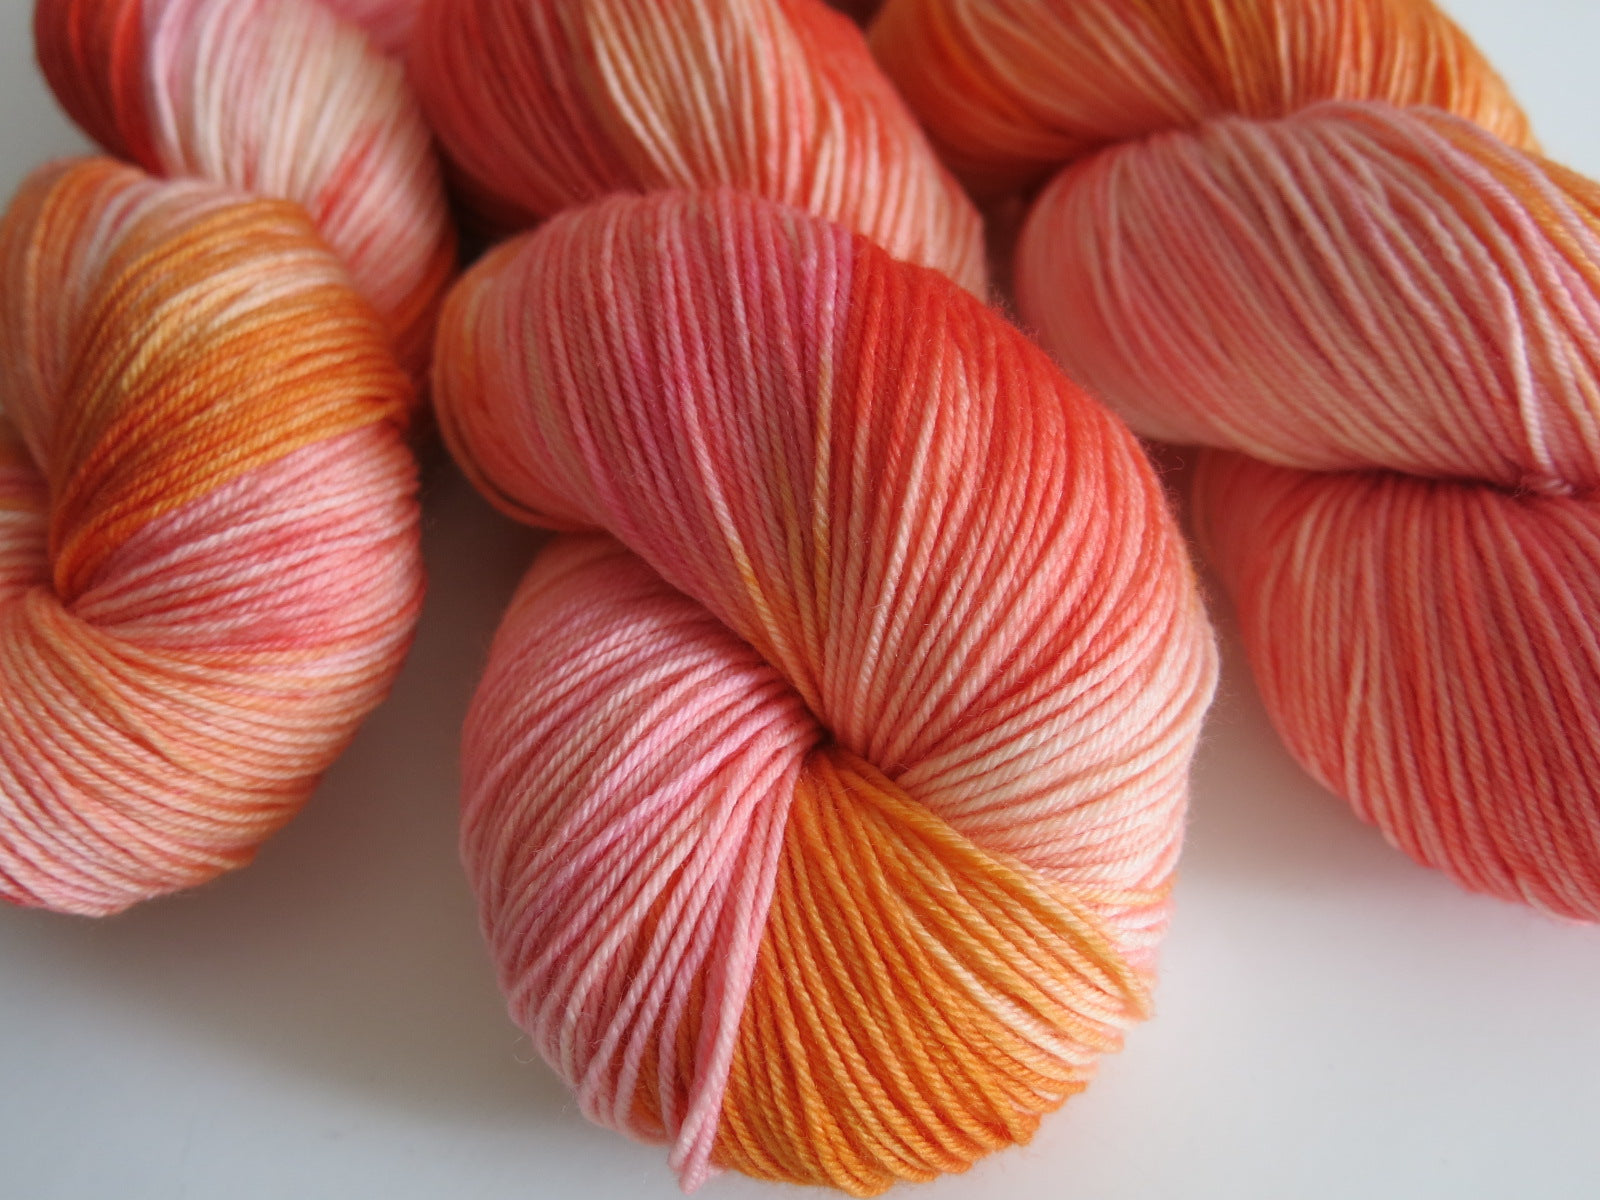 kettle dyed merino wool in peaches, orange and pink